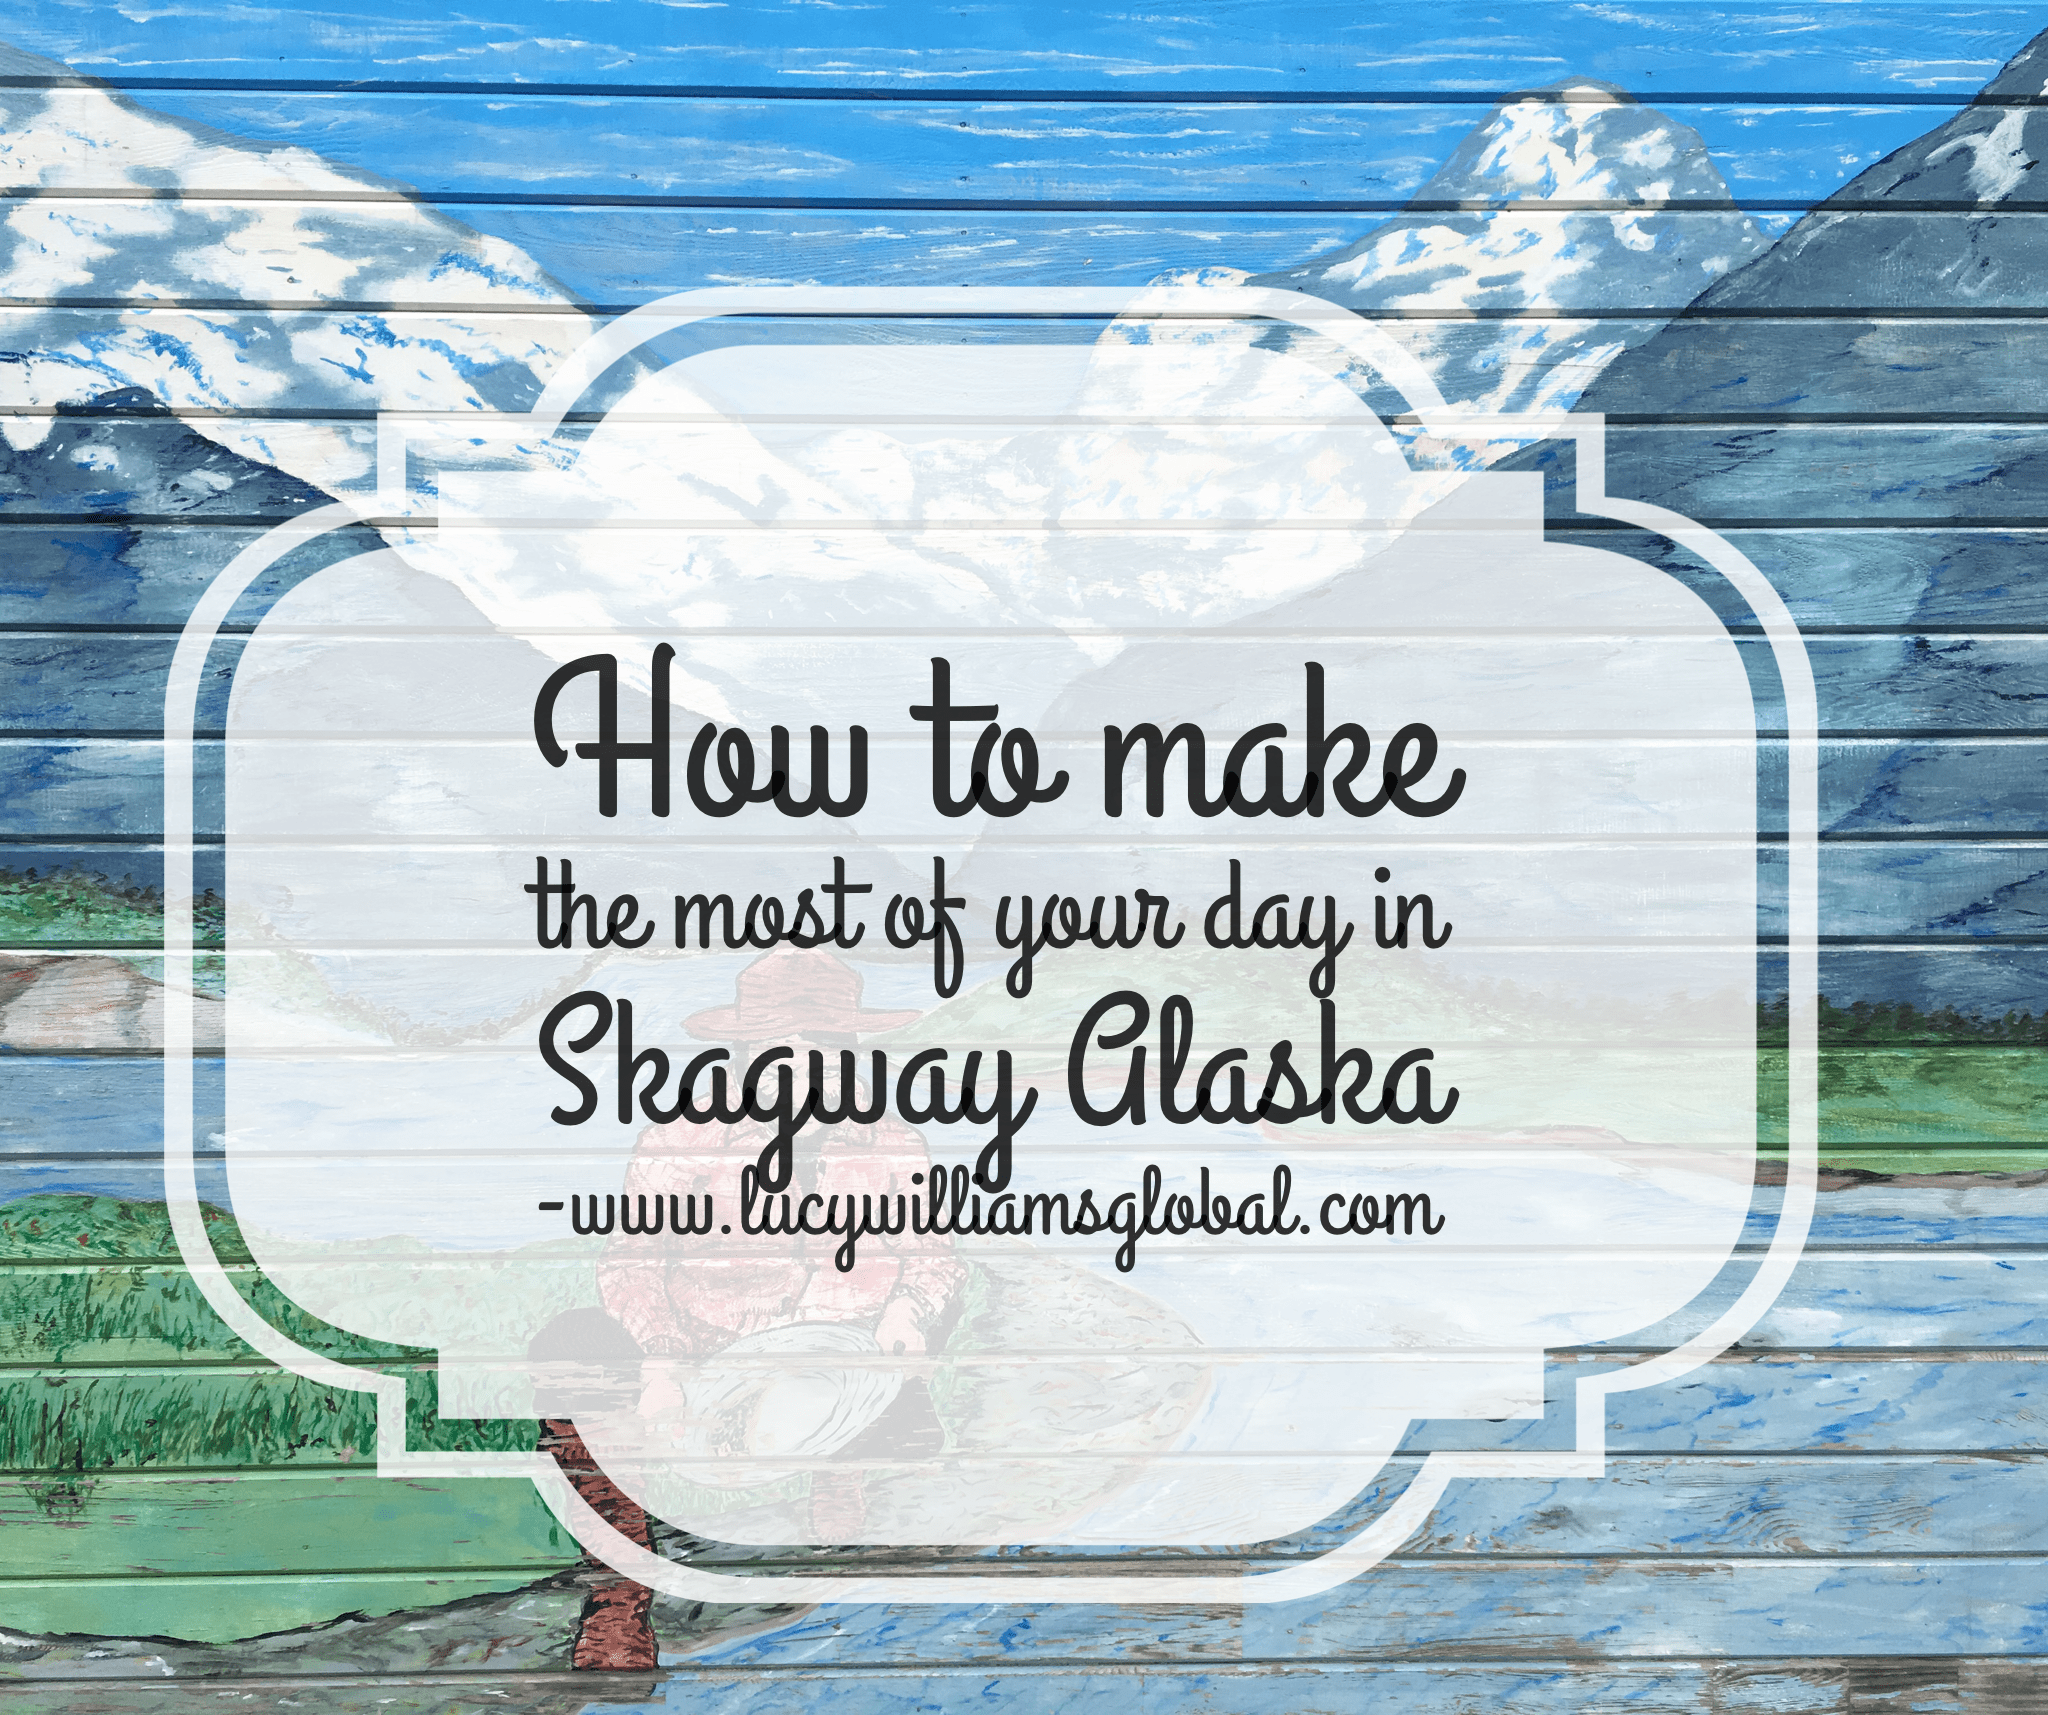 How to Make the Most of Your Day in Skagway Alaska